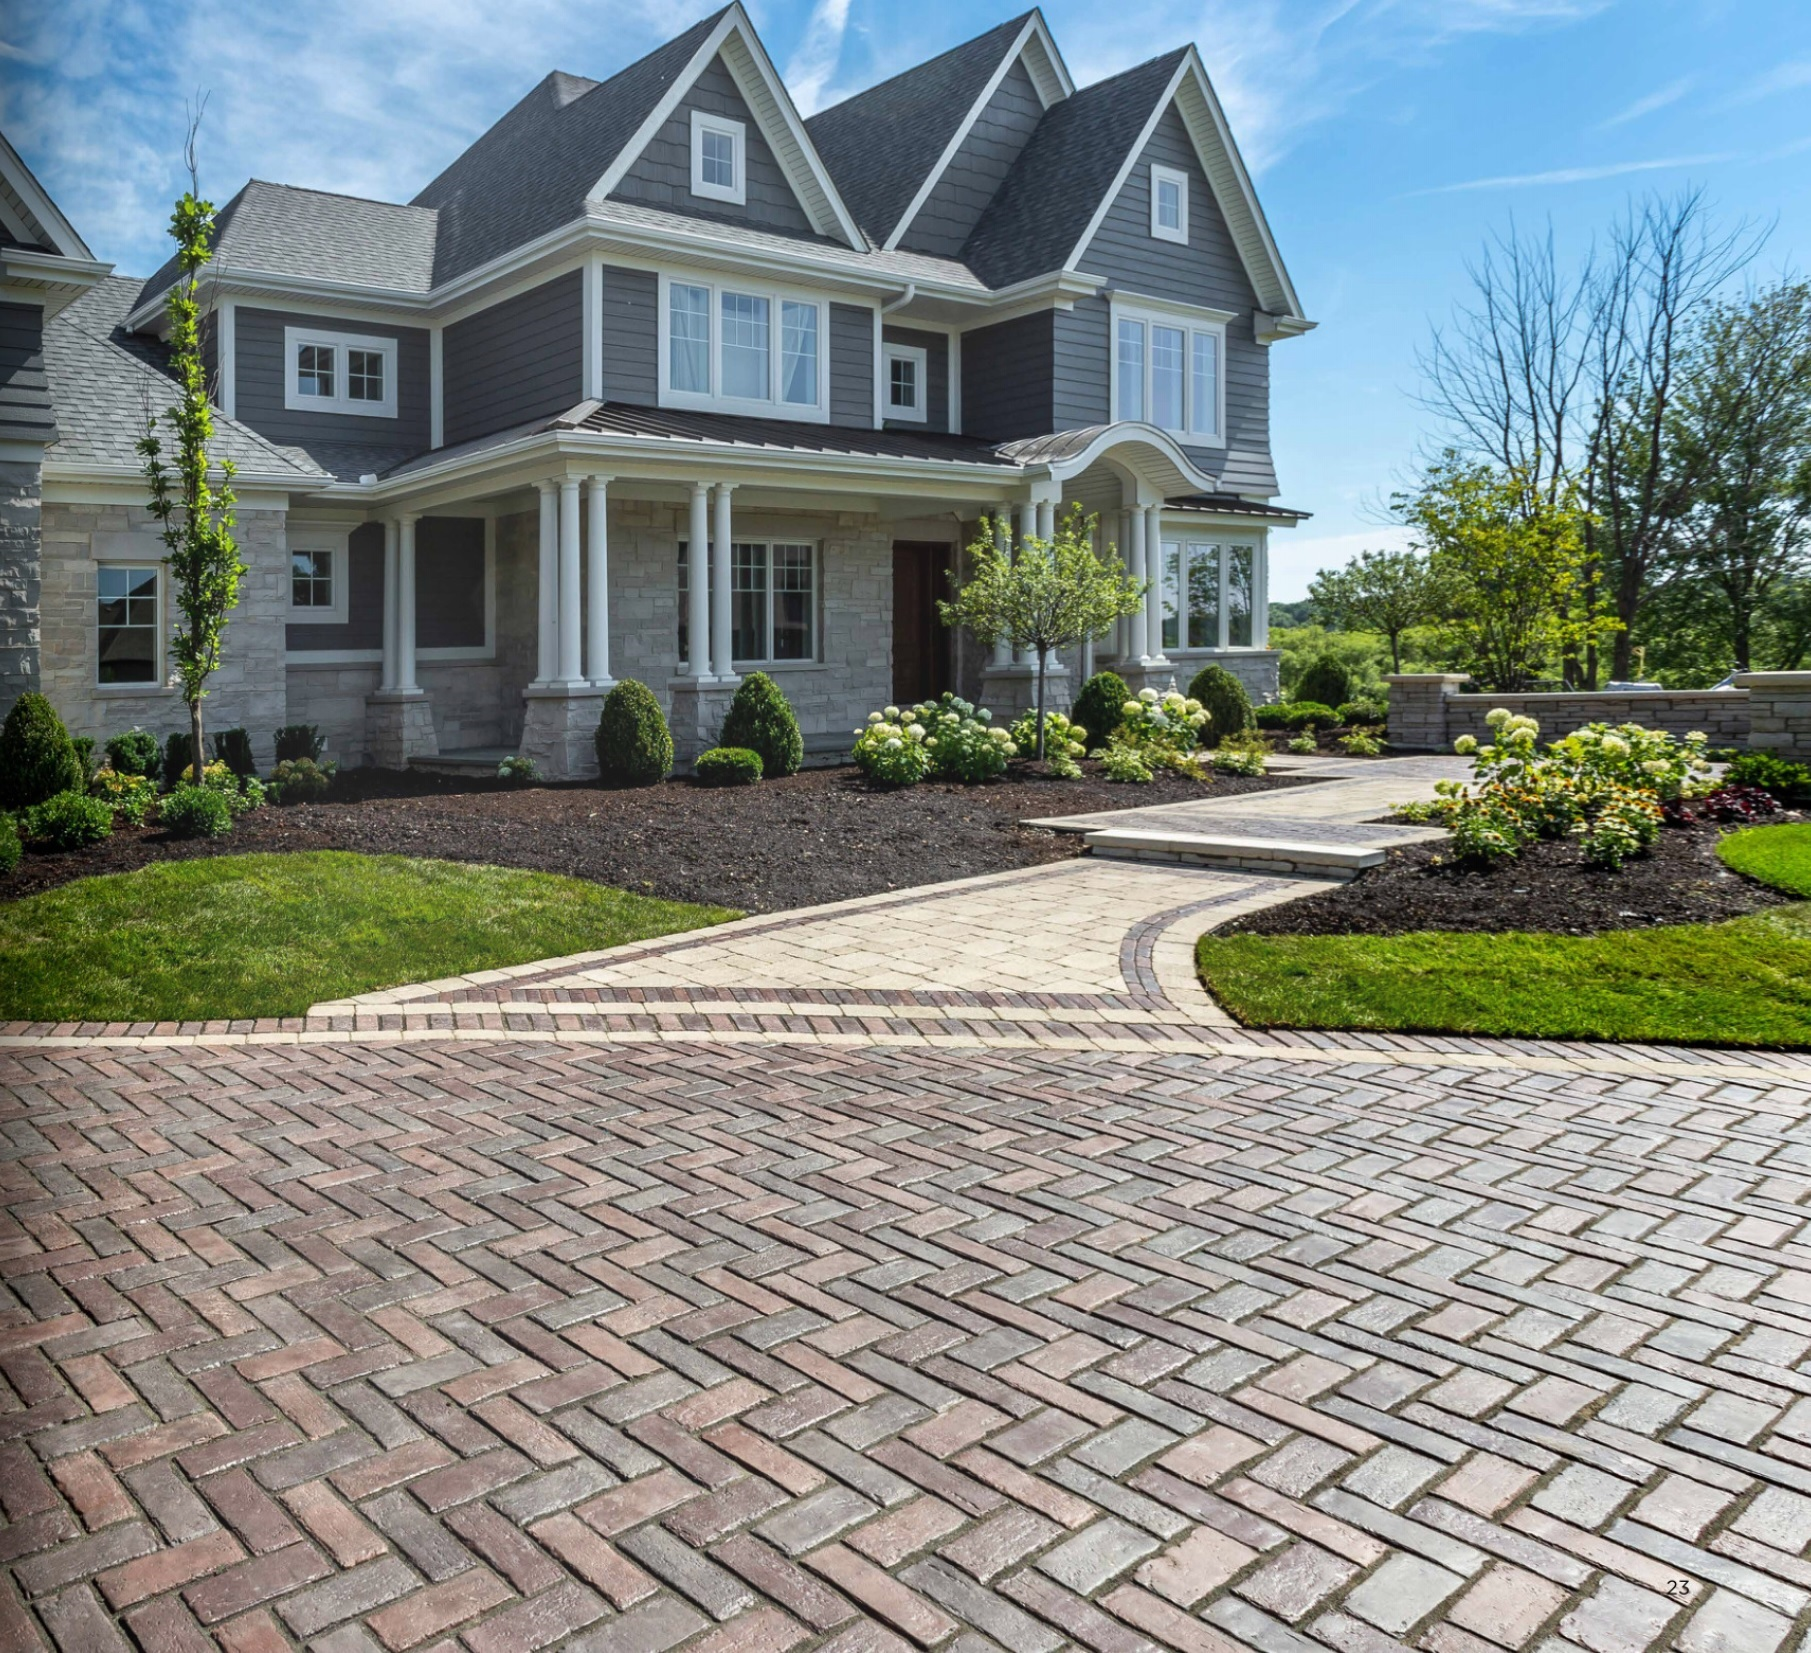 Maintenance with quality lawn service and snow removal in Shelby Township, MI